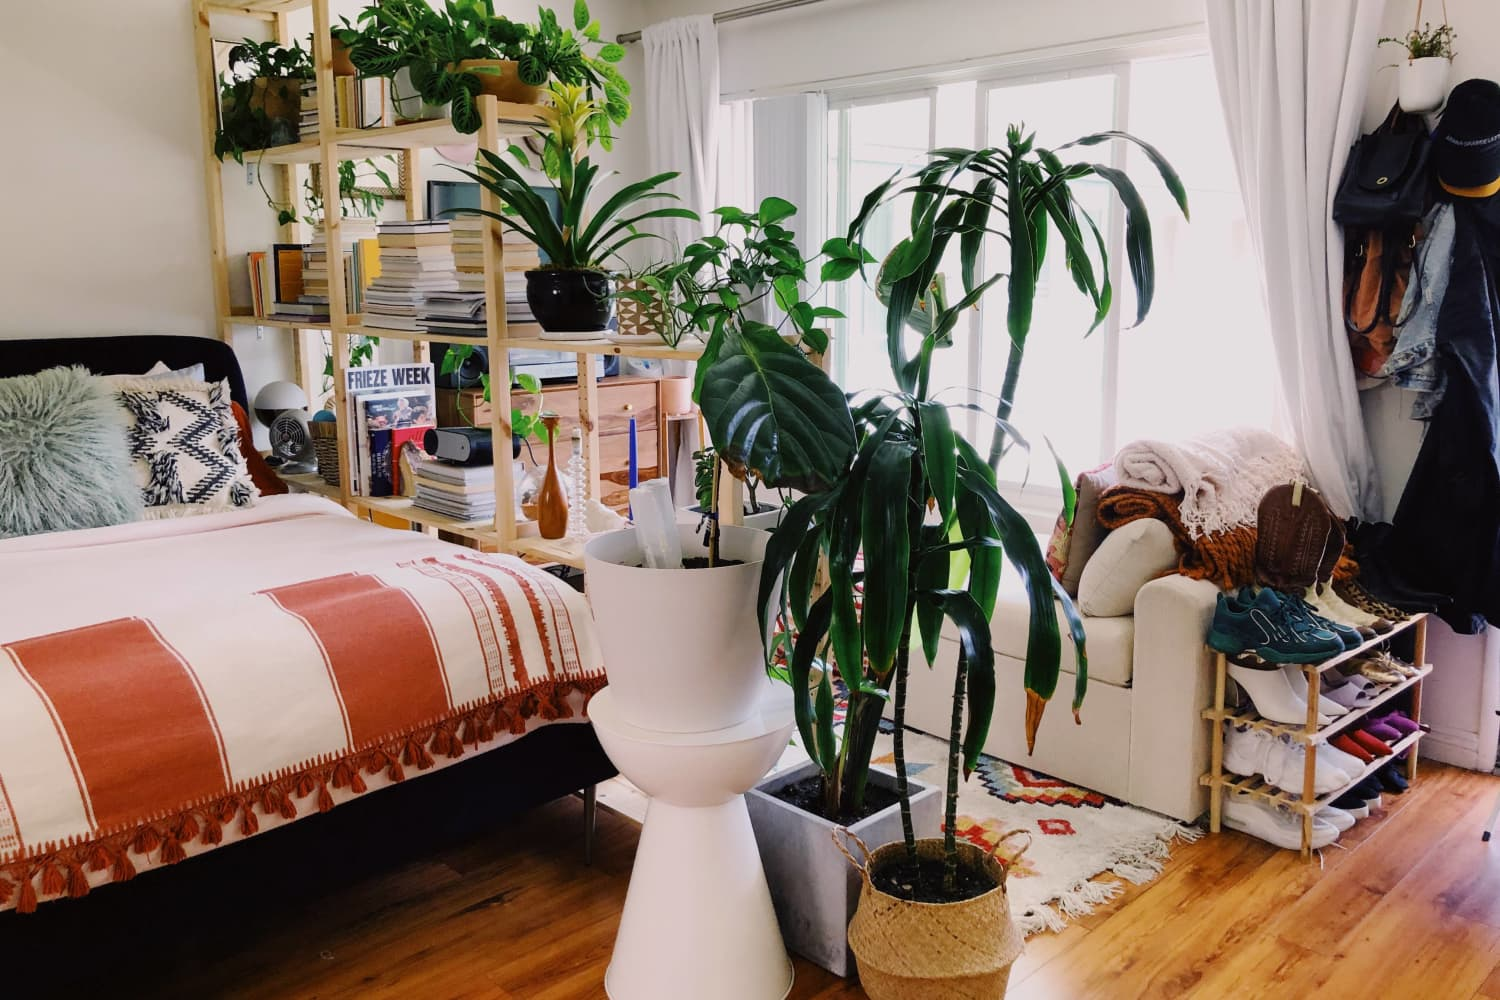 A 500-Square-Foot Studio Proves You Don't Have to Be a Super Minimalist to Live in a Small Space